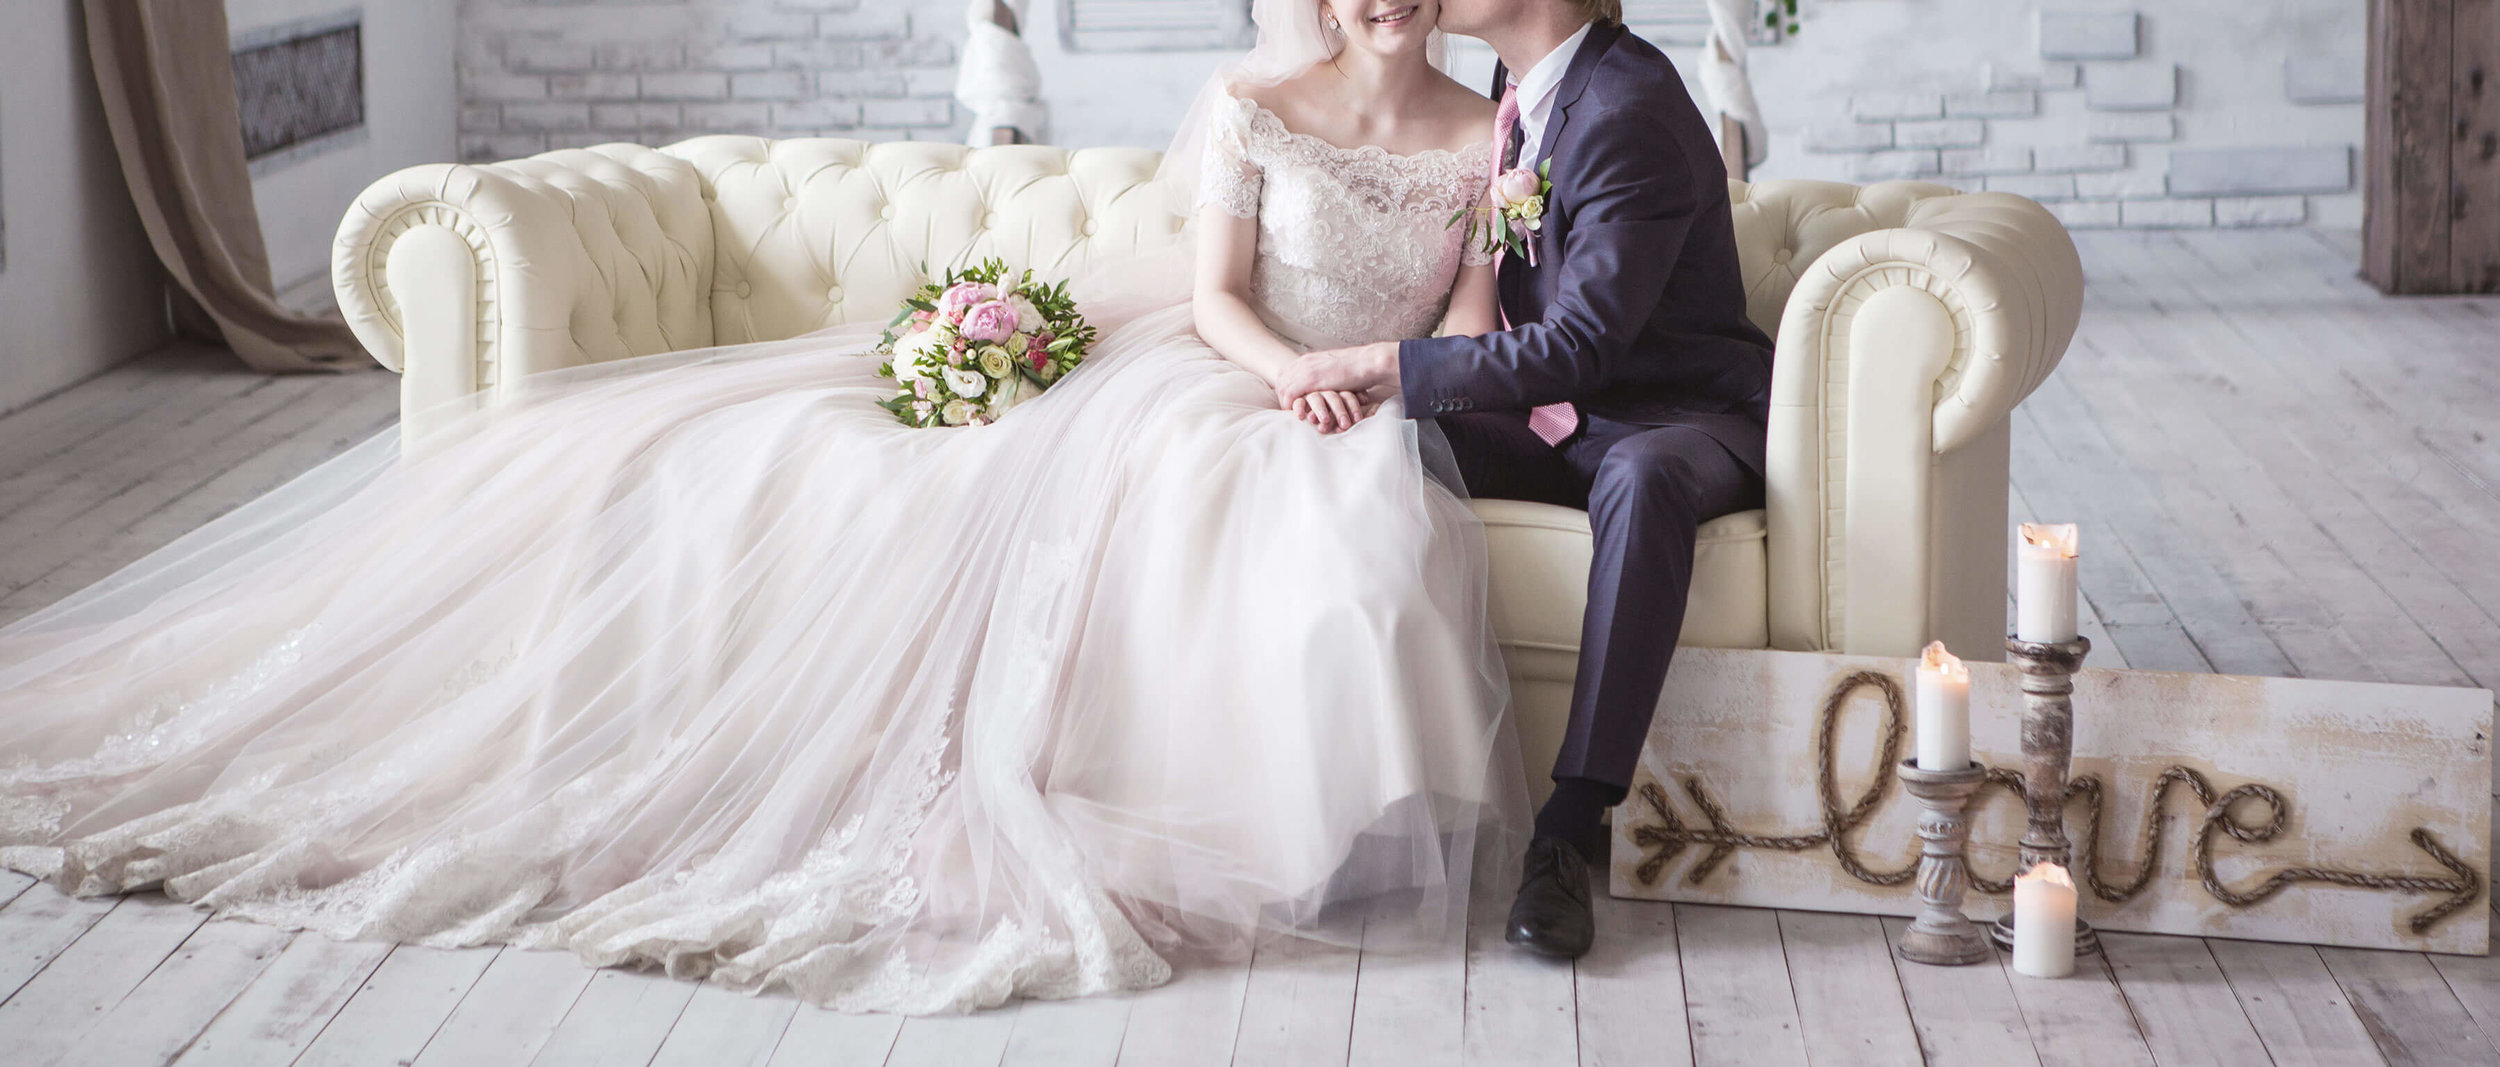 bride and groom sitting on white couch